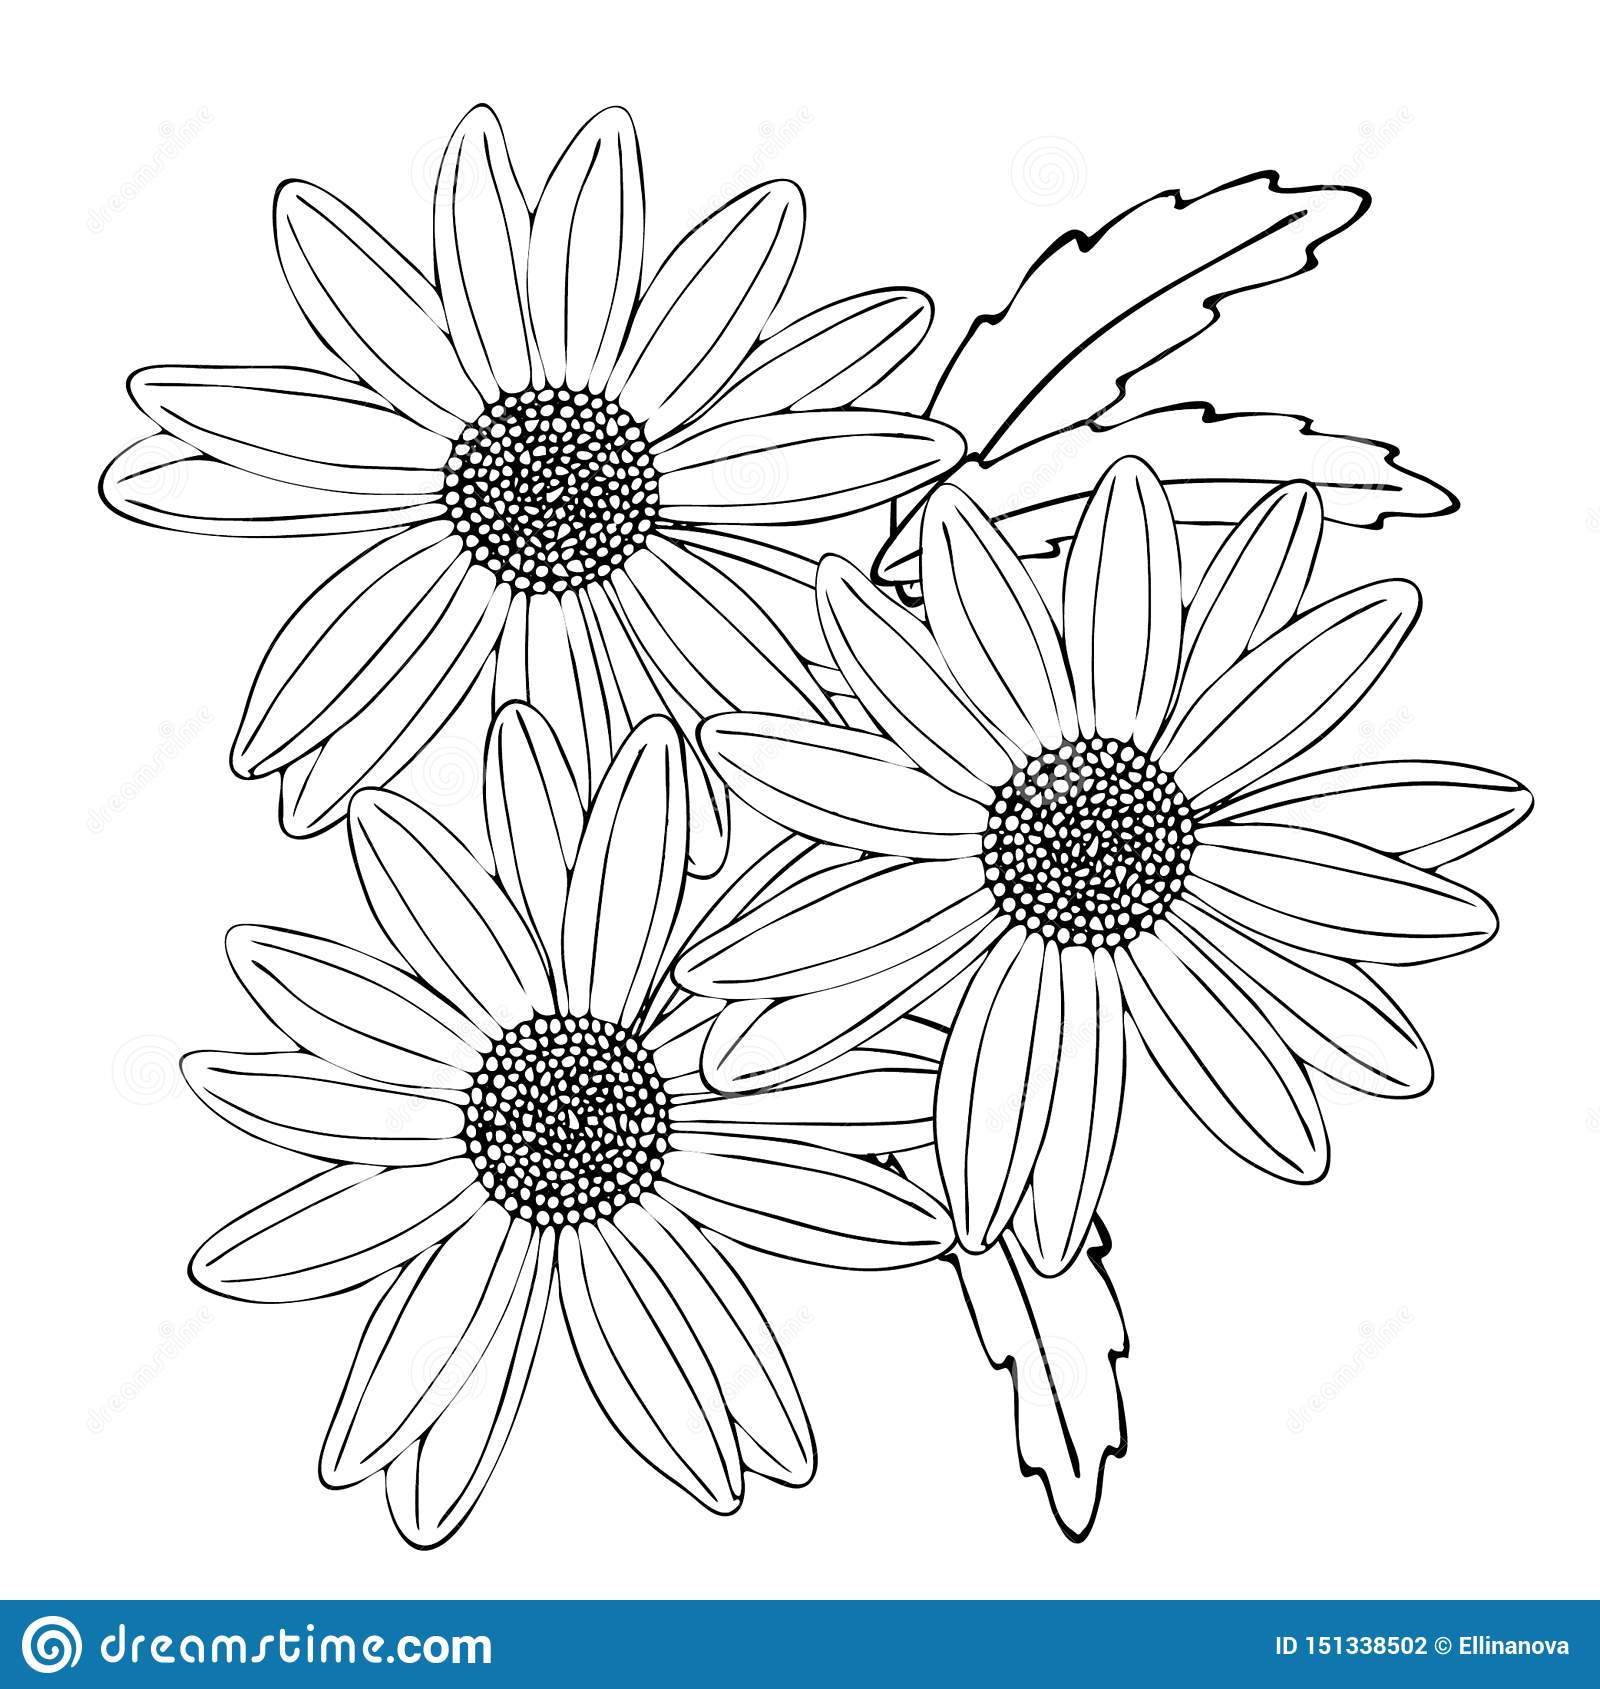 Floral Coloring Template With Black Line Flower Stock Vector Illustration Of Fashion Retro 151338502